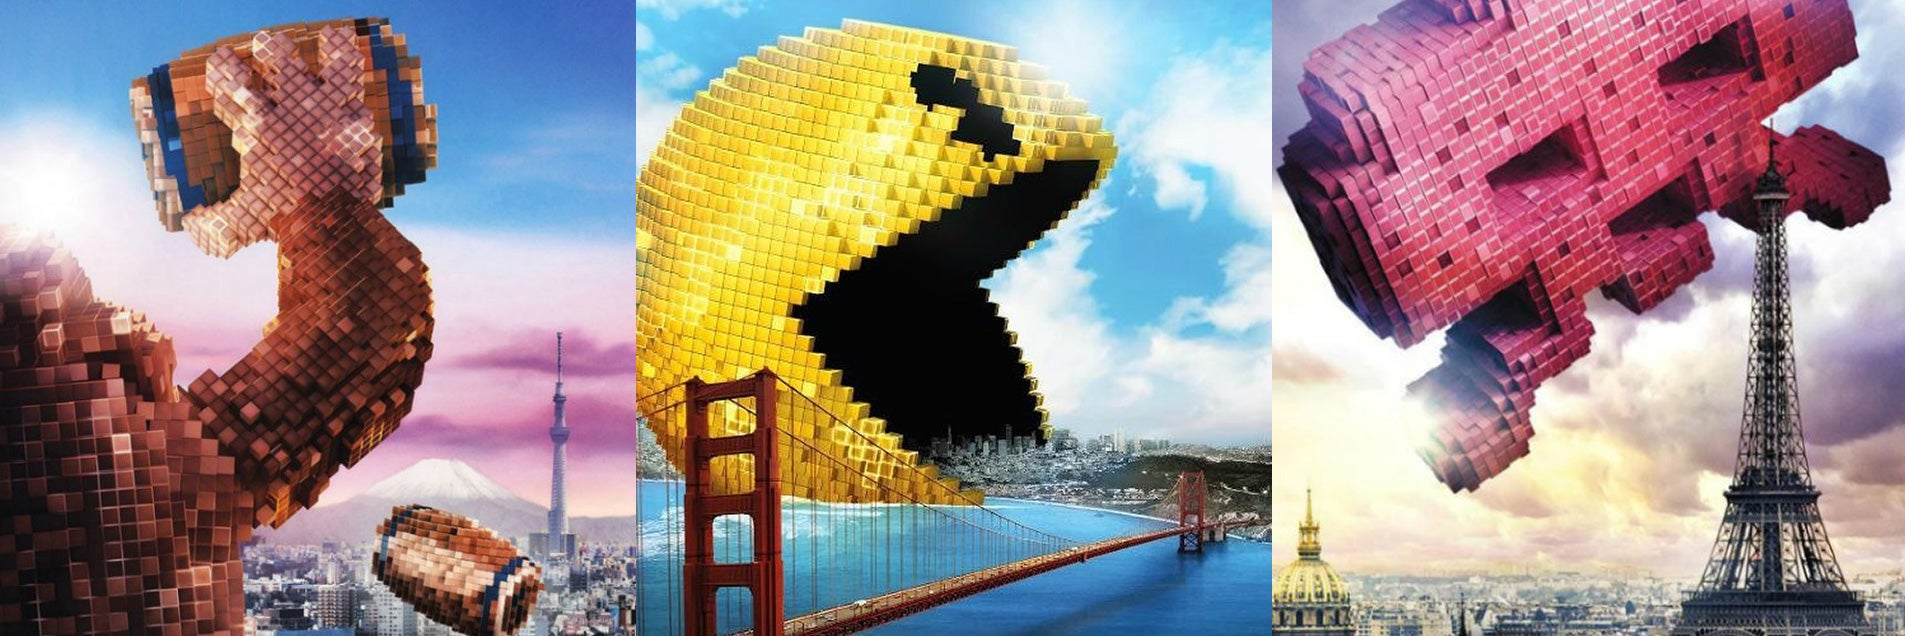 Pixels Is A Bad Movie. Like, Really Bad.